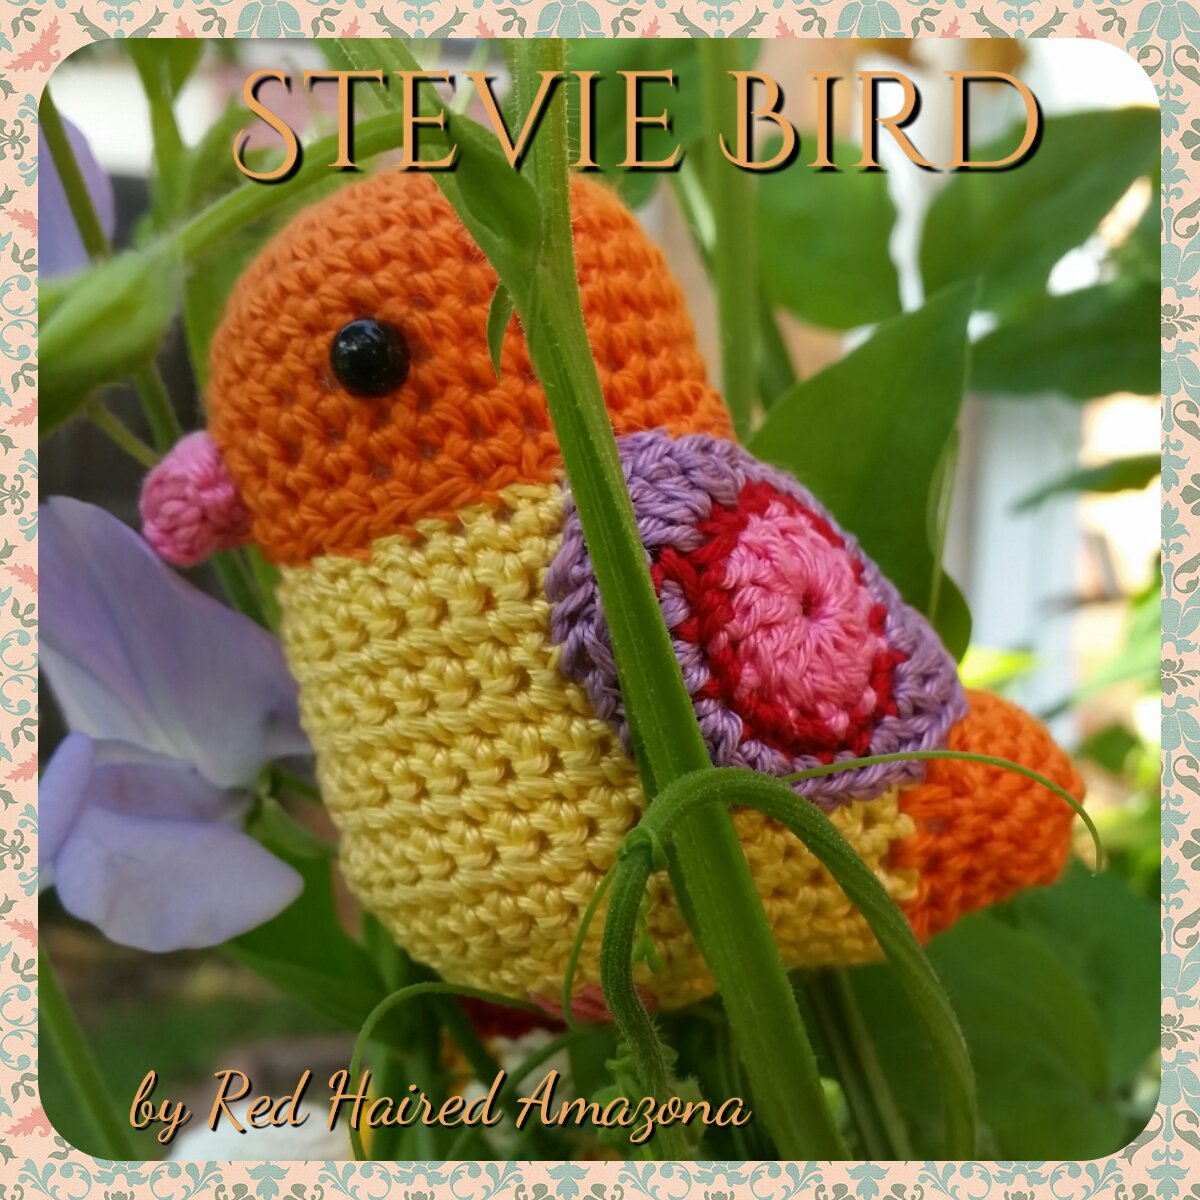 Amigurumi Hummingbird Pattern : Red Haired Amazona: Stevie Bird Amigurumi Tutorial